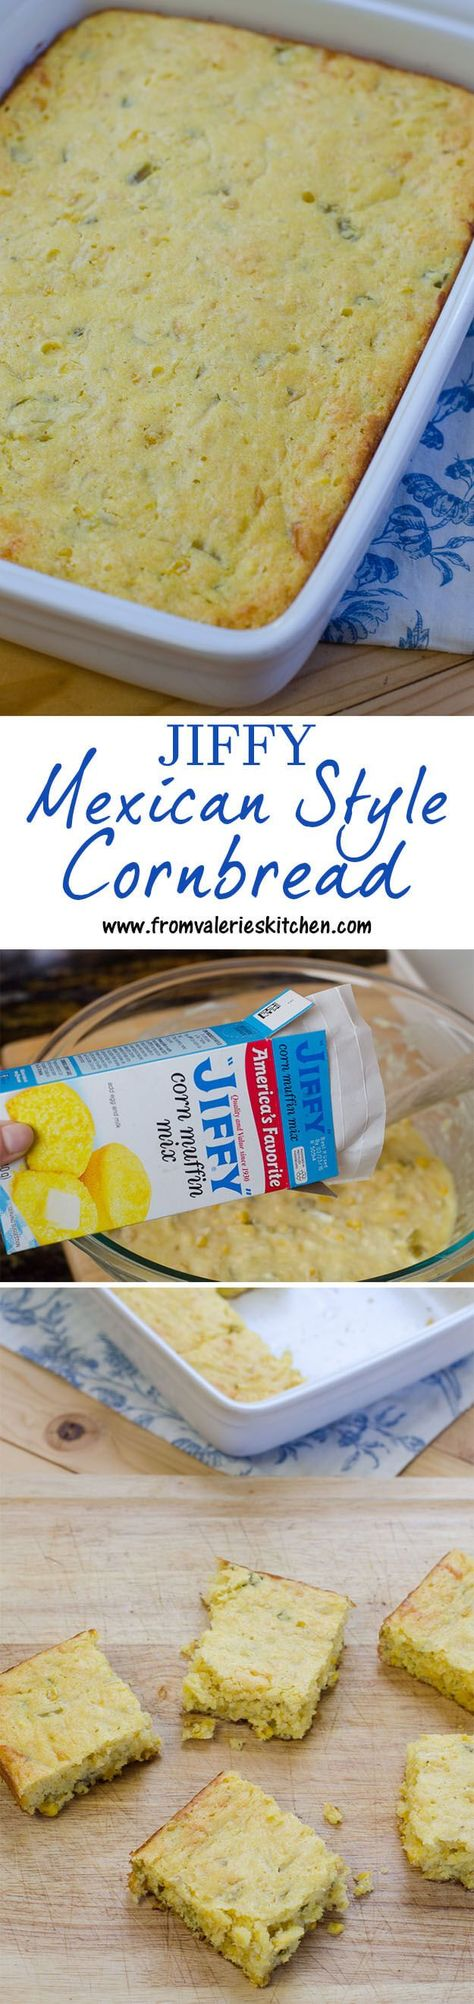 Jazz up packaged corn muffin mix to make this flavorful Mexican style cornbread! ~ http://www.fromvalerieskitchen.com